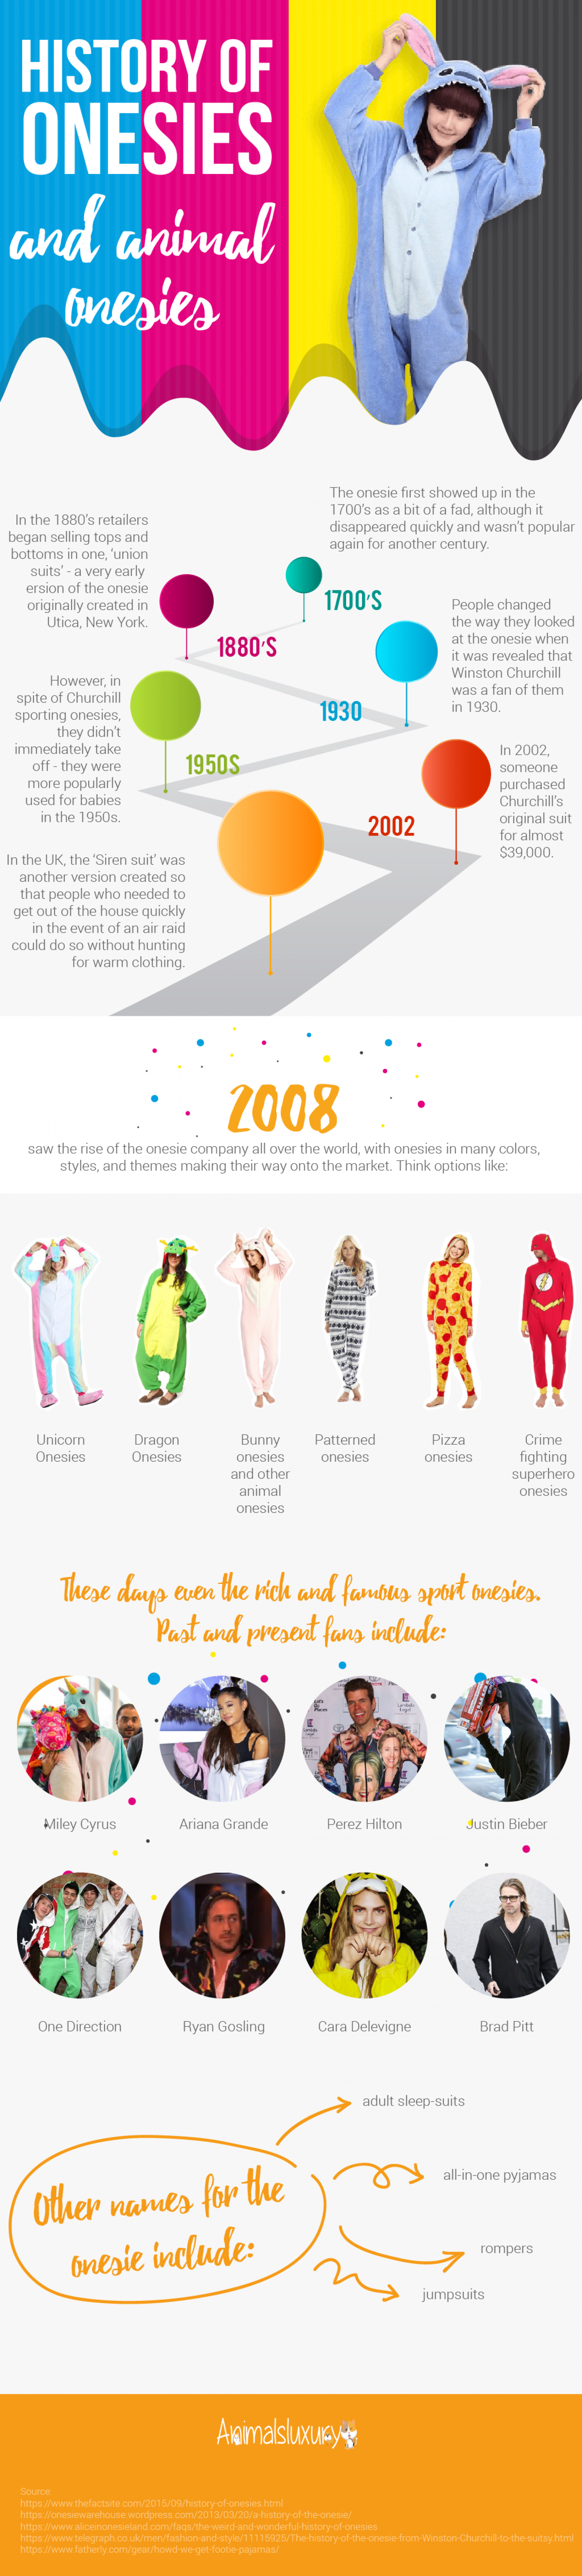 The History Of Onesies Infographic